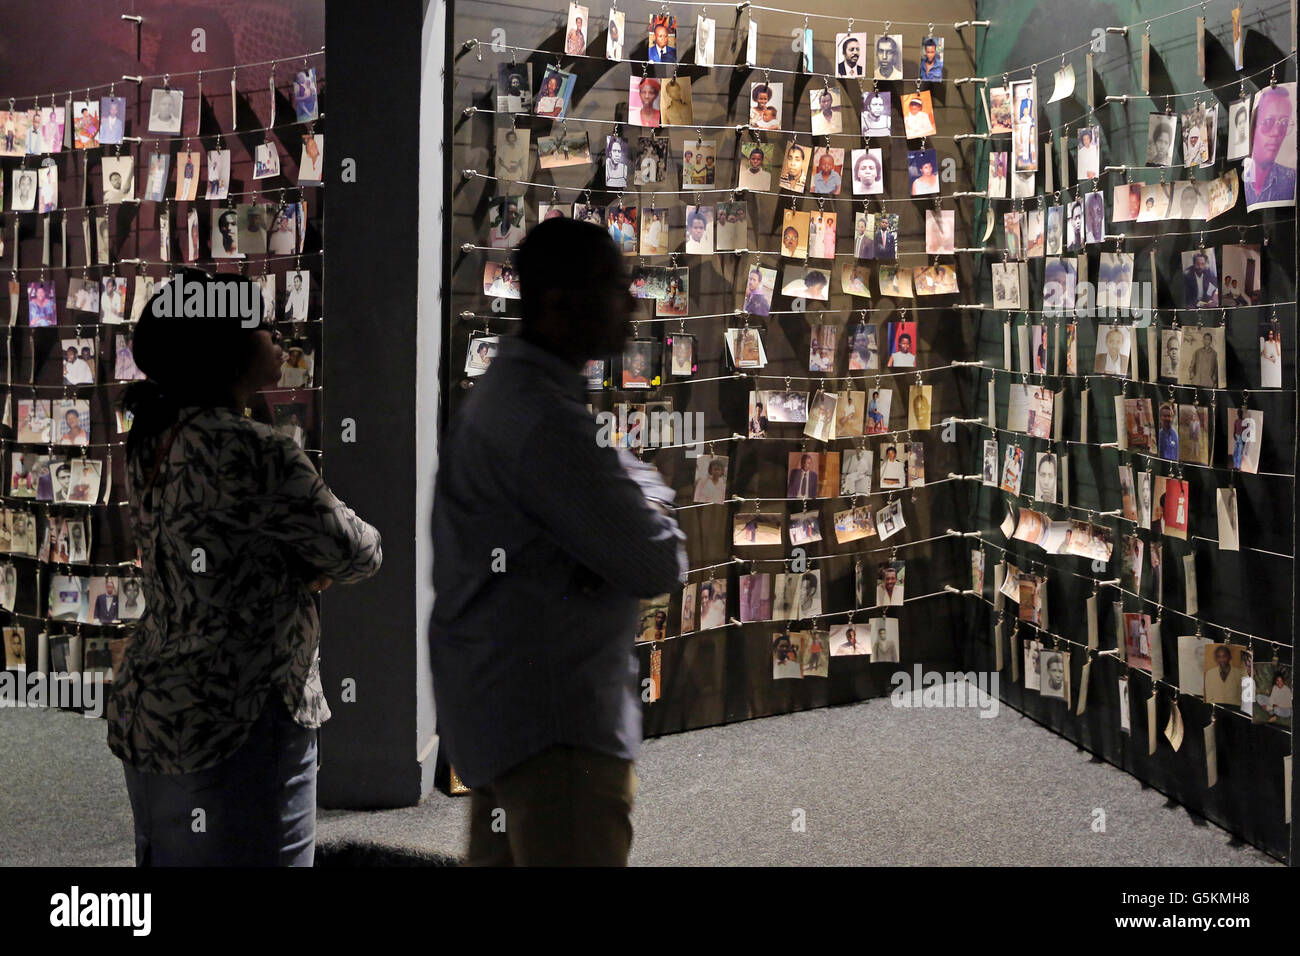 Visitors looking at photographs (donated to the museum by families) of people who were killed during the 1994 genocide. - Stock Image